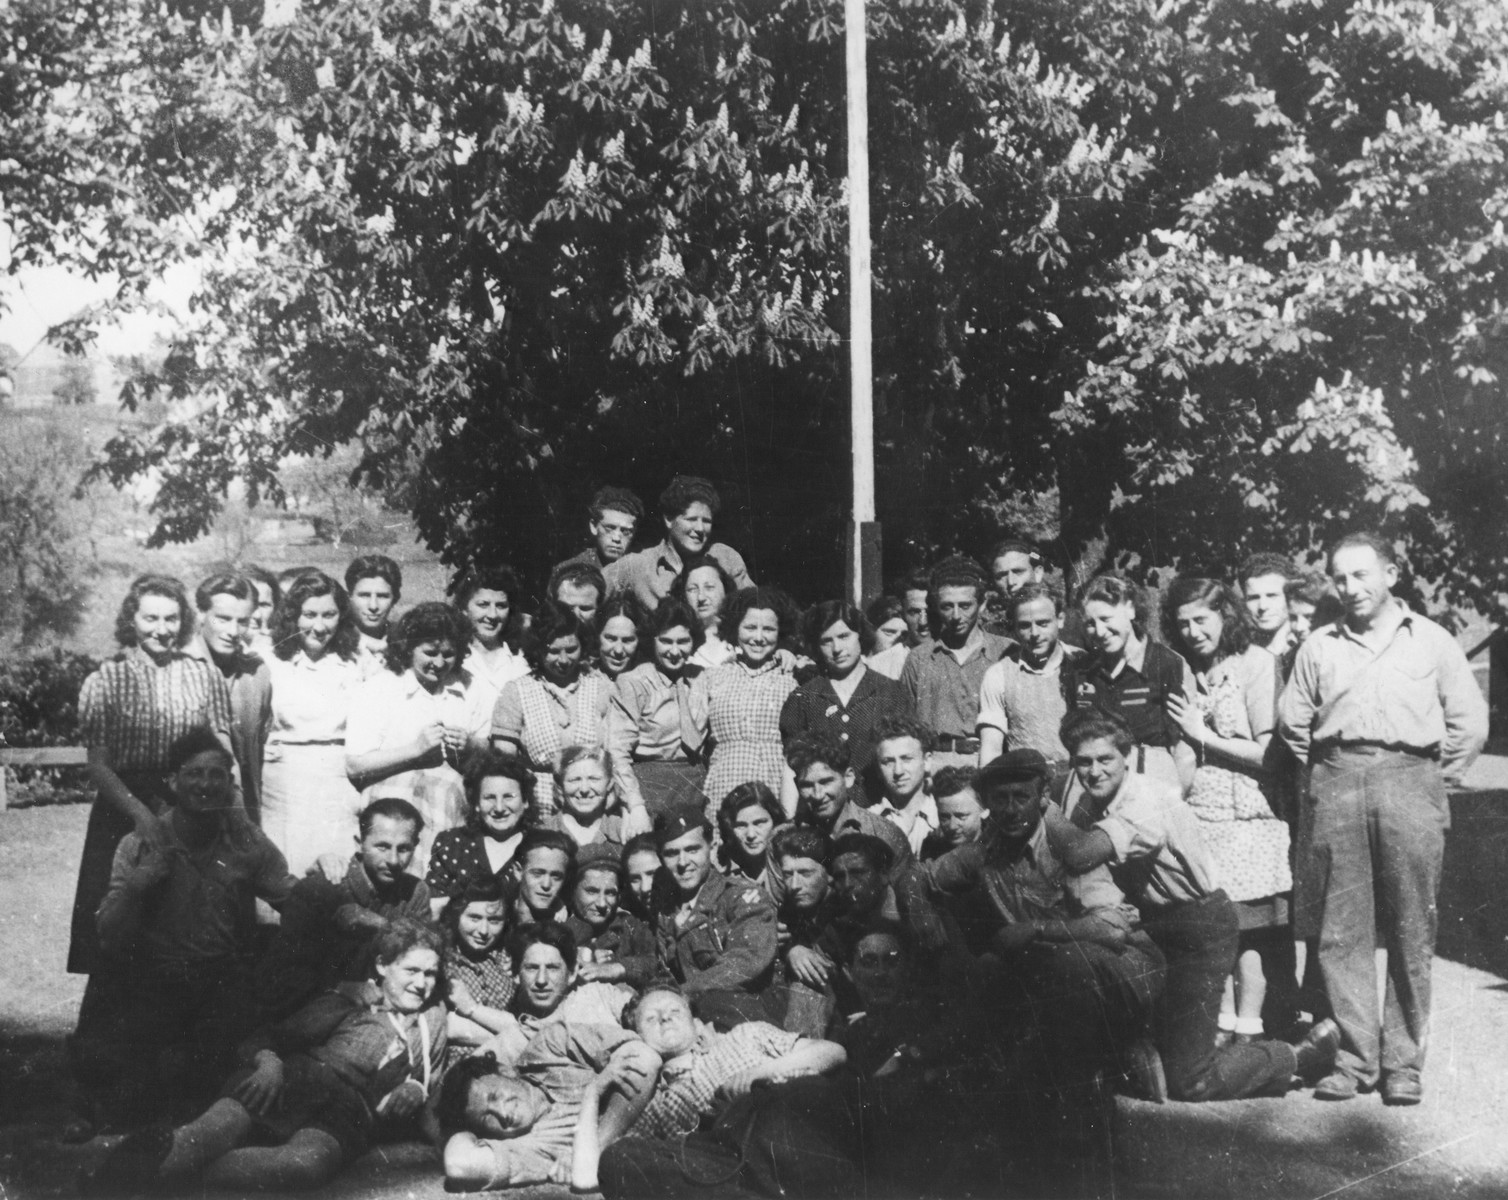 Group portrait of members of Kibbutz Buchenwald.  Mayer Abramowitz is pictured in the center wearing a military uniform.